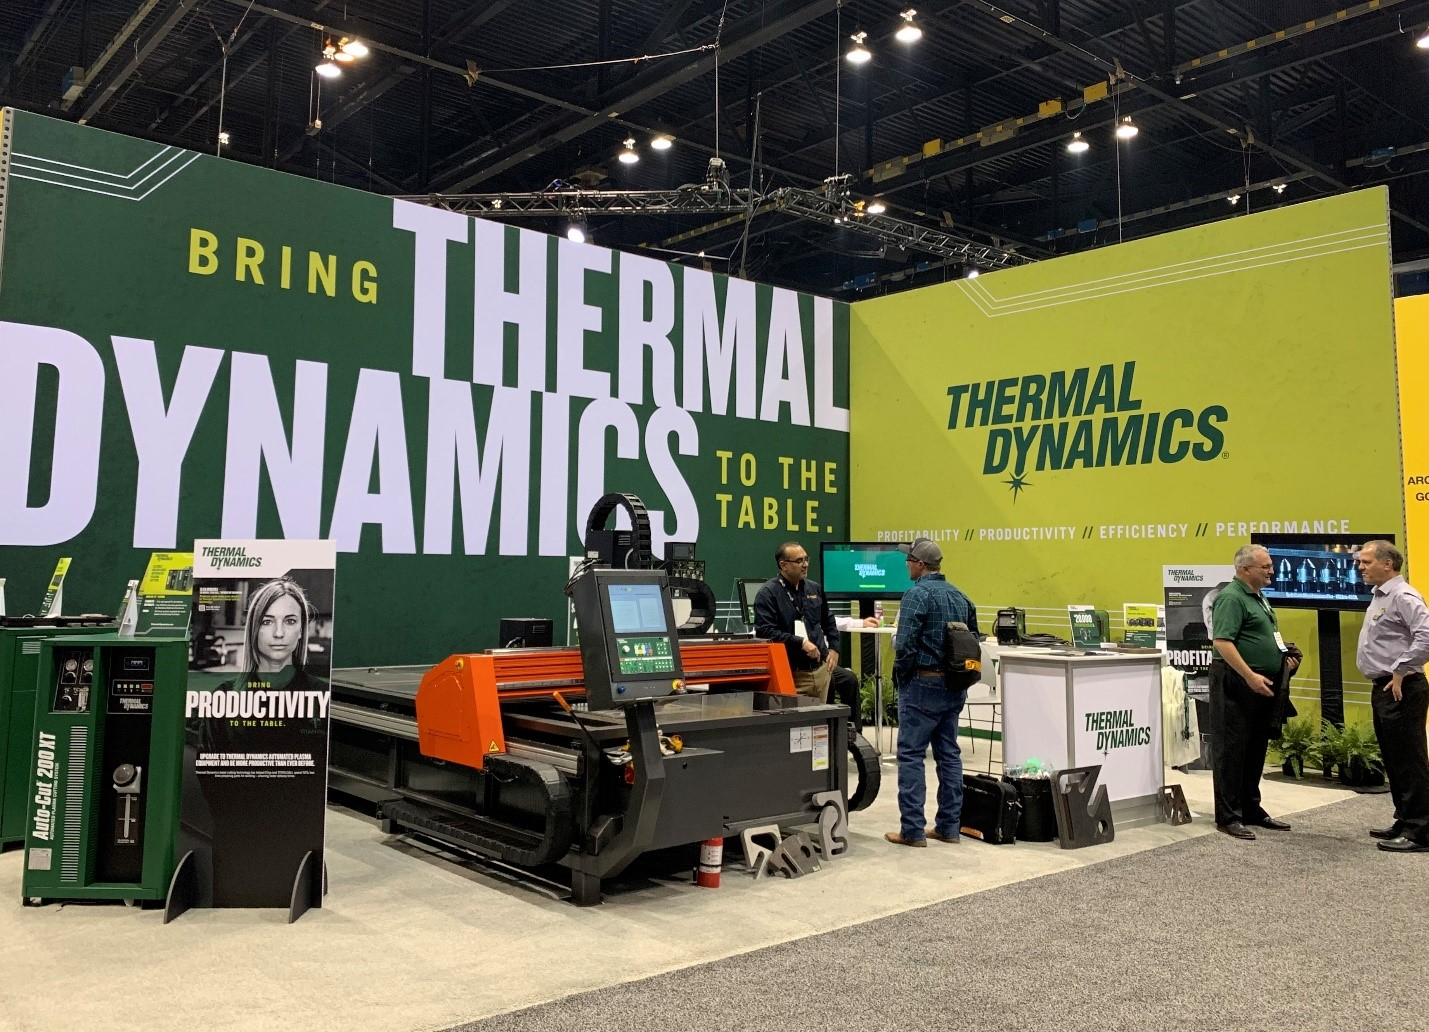 Thermal Dynamics FABTECH 2019 booth